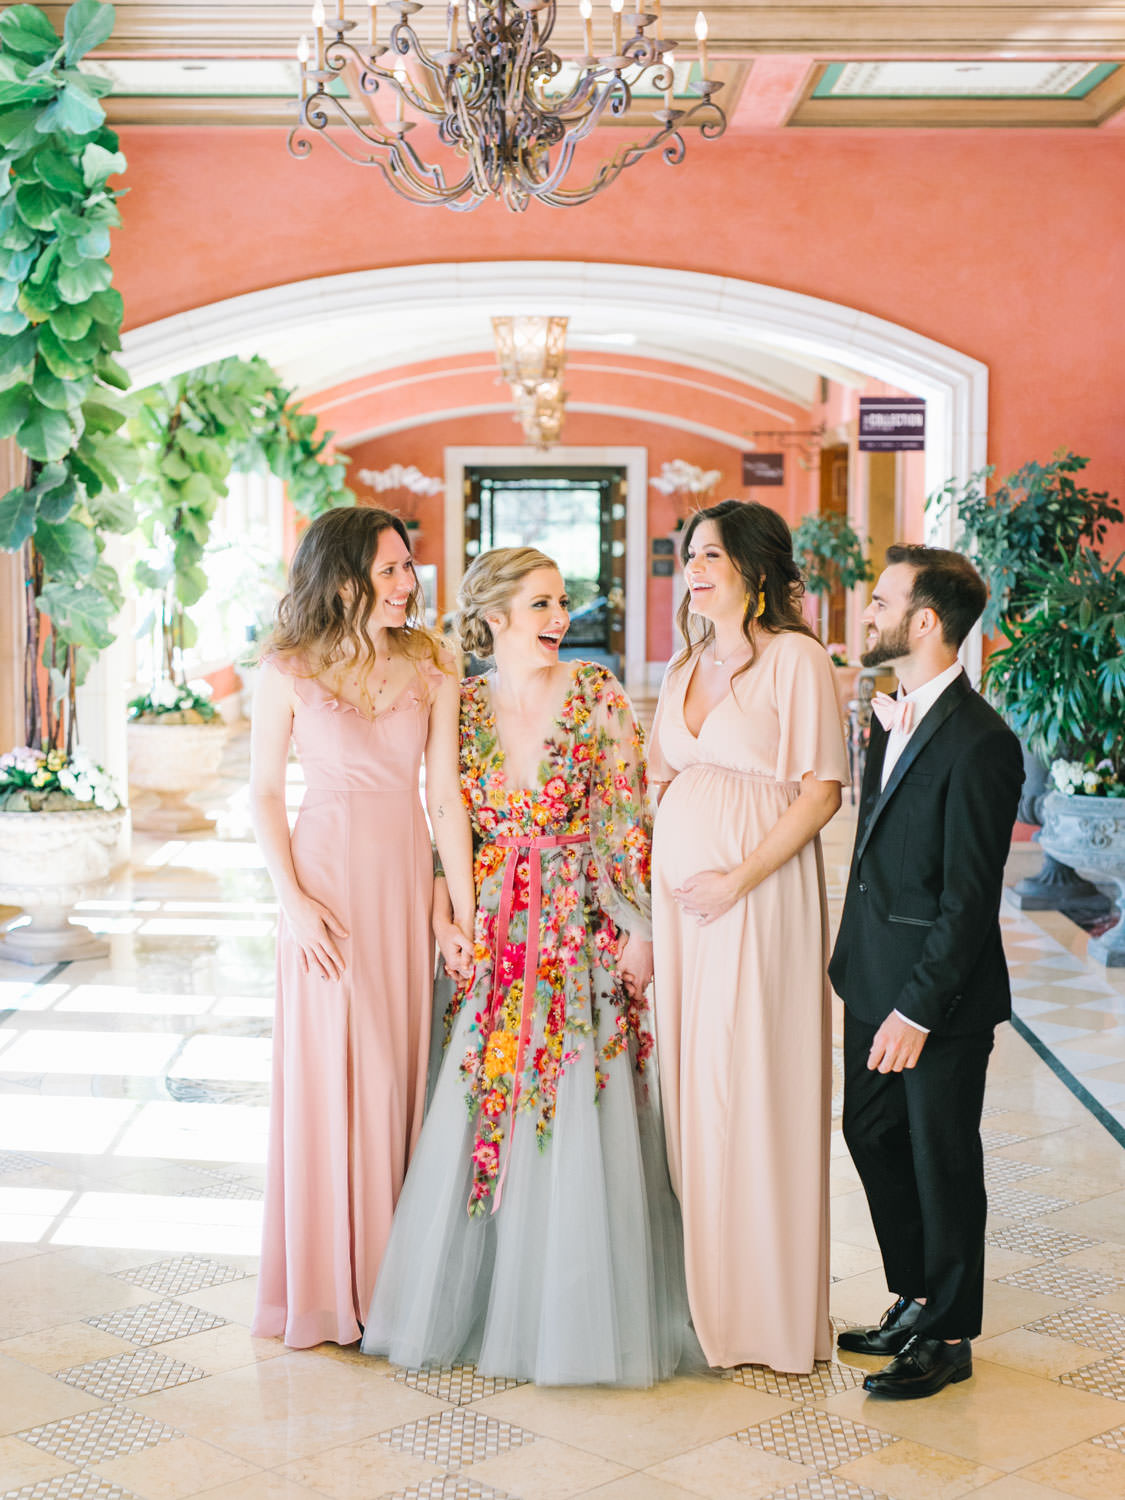 Bridesmaids in mix match mauve and blush dresses and bridesman in in black tux with mauve bowtie with Bride wearing a Marchesa blue and pink floral long sleeve couture gown with floral appliques. Fairmont Grand del Mar wedding published on Martha Stewart Weddings